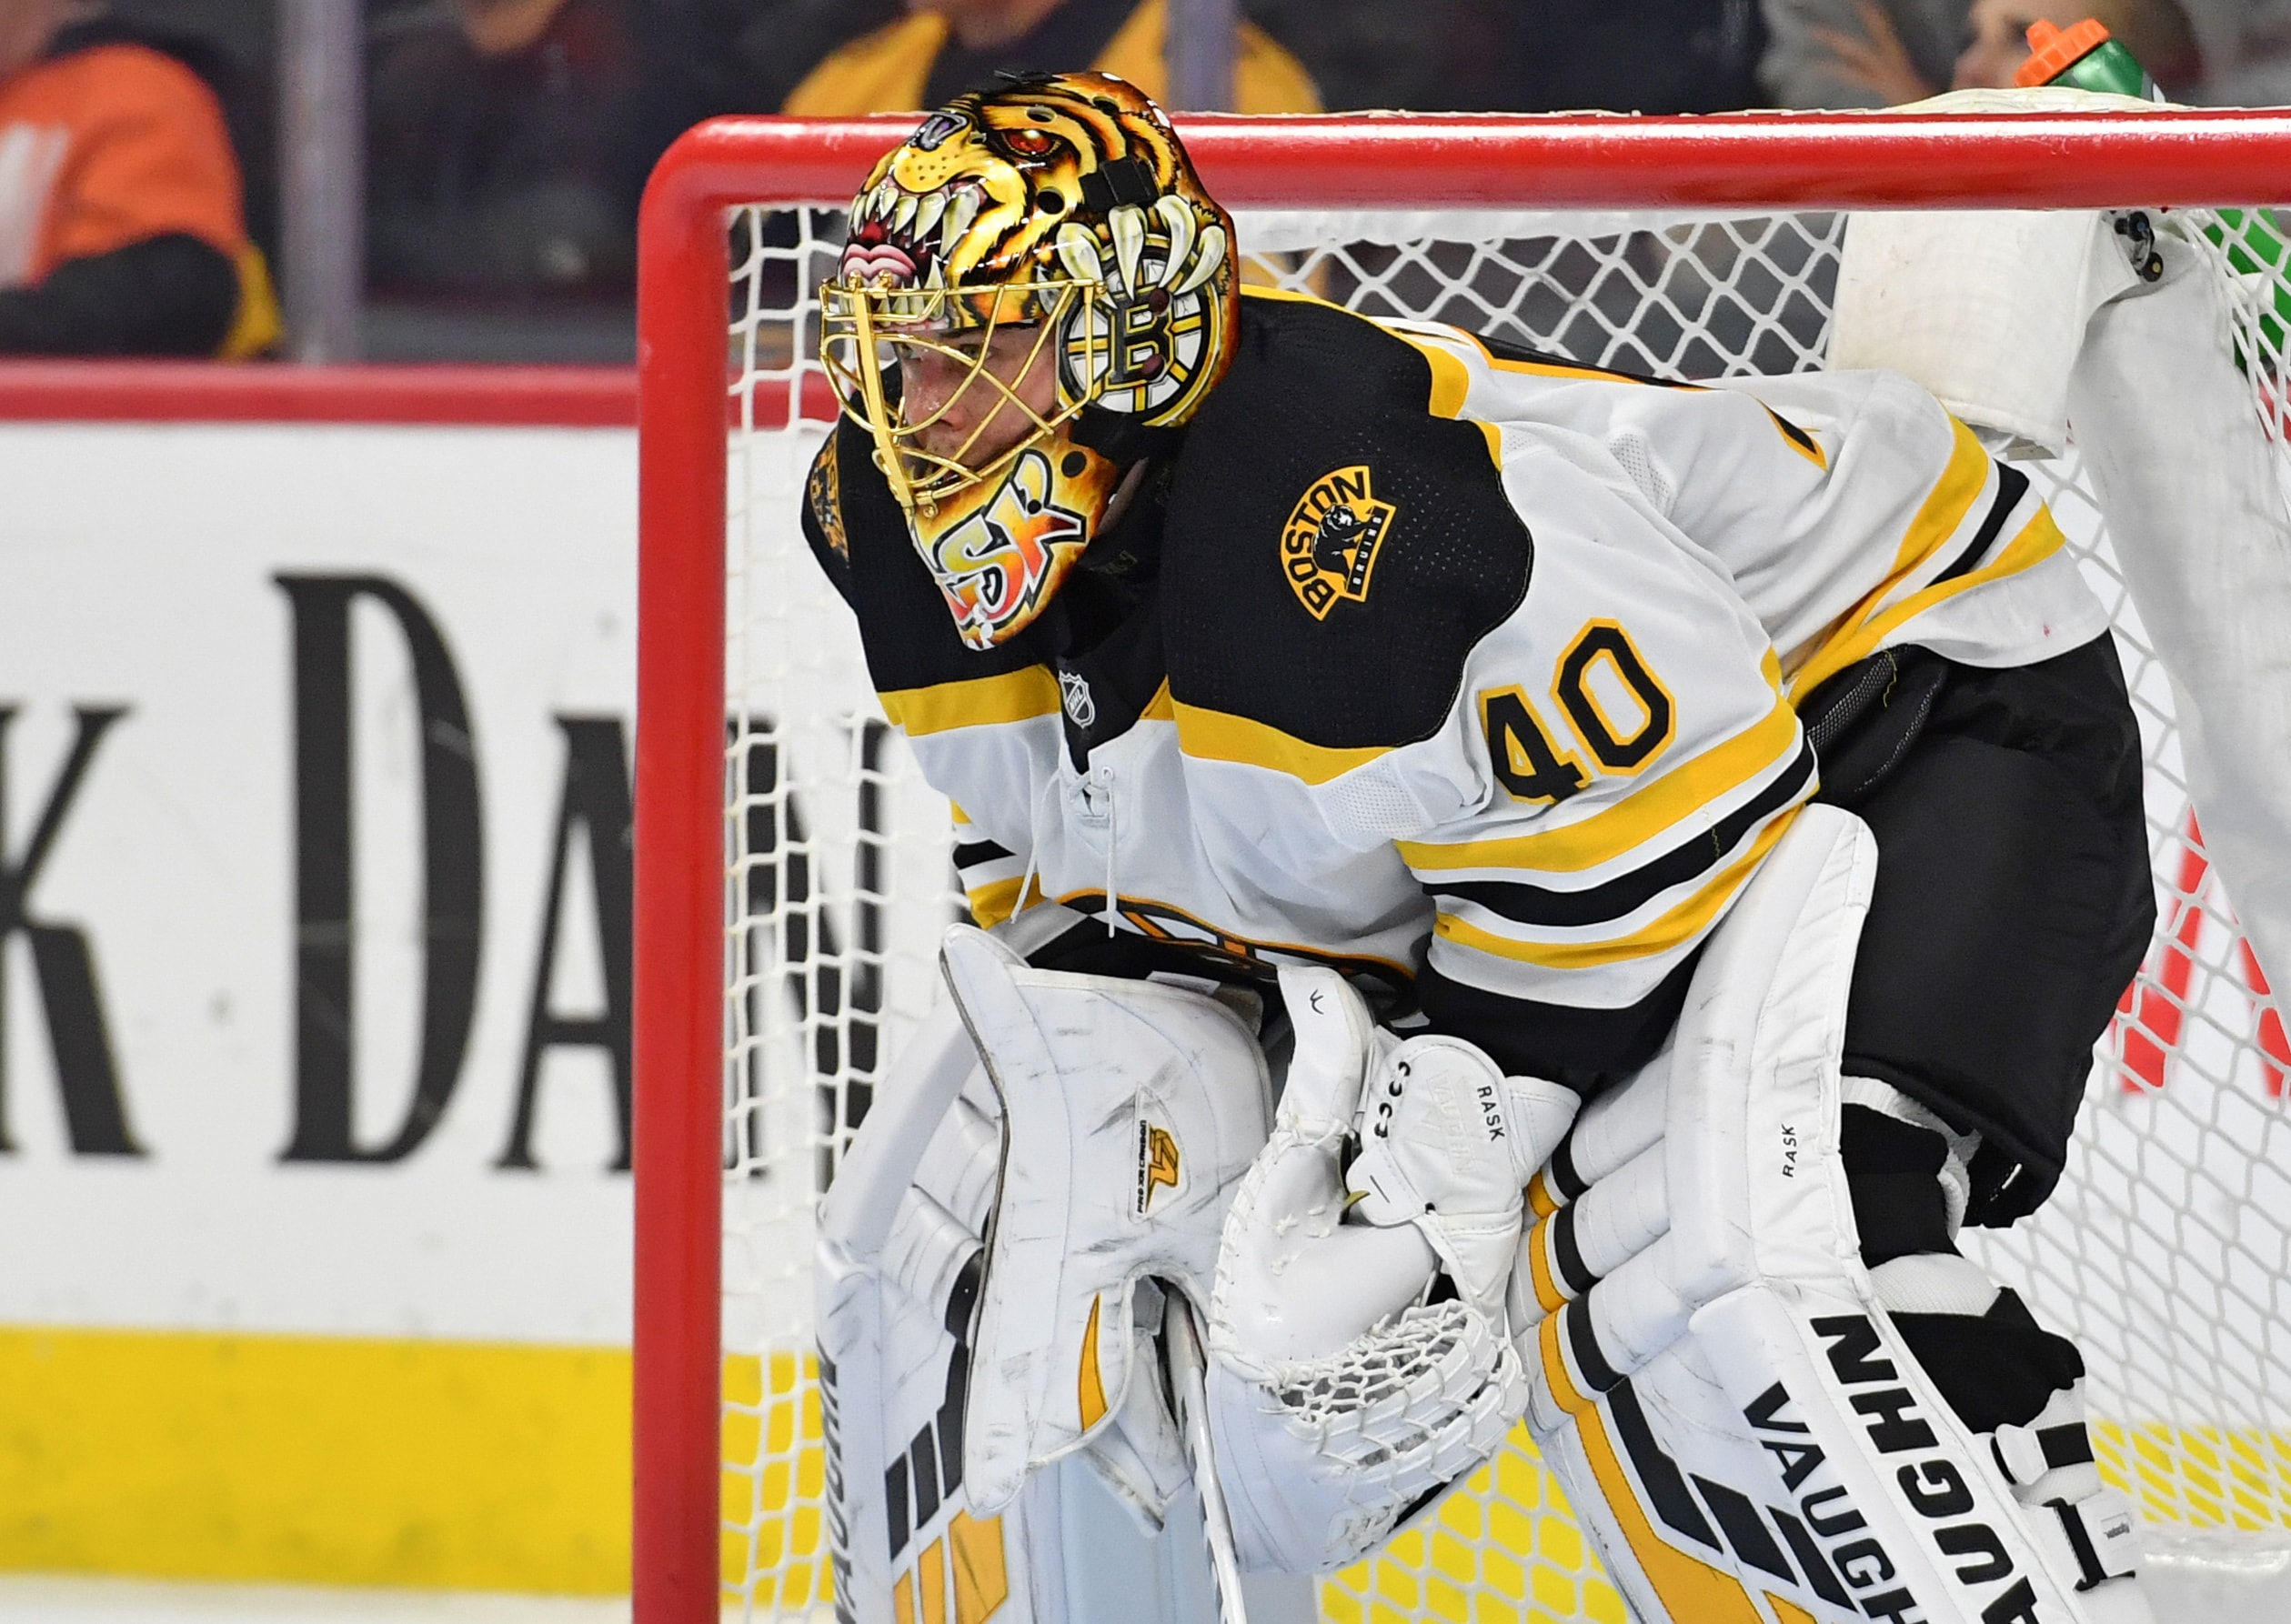 Bruins' Rask: Retiring after contract expires 'a possibility'